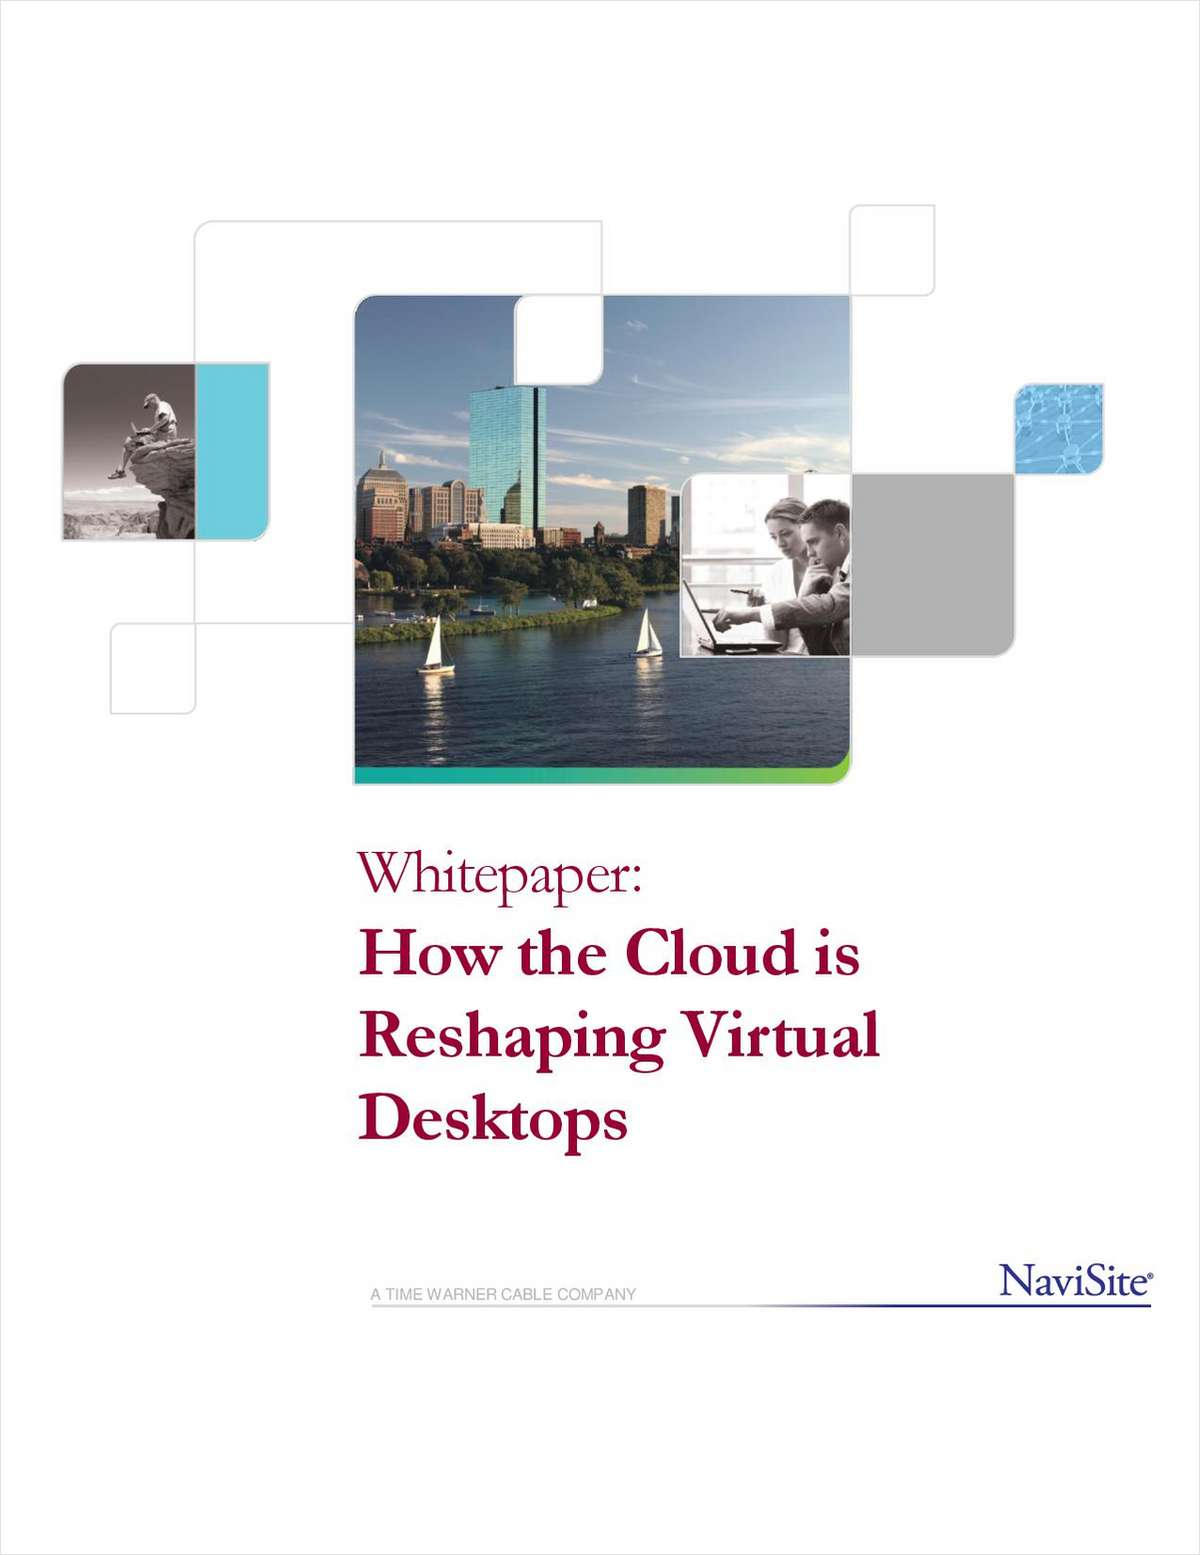 How the Cloud is Reshaping Virtual Desktops